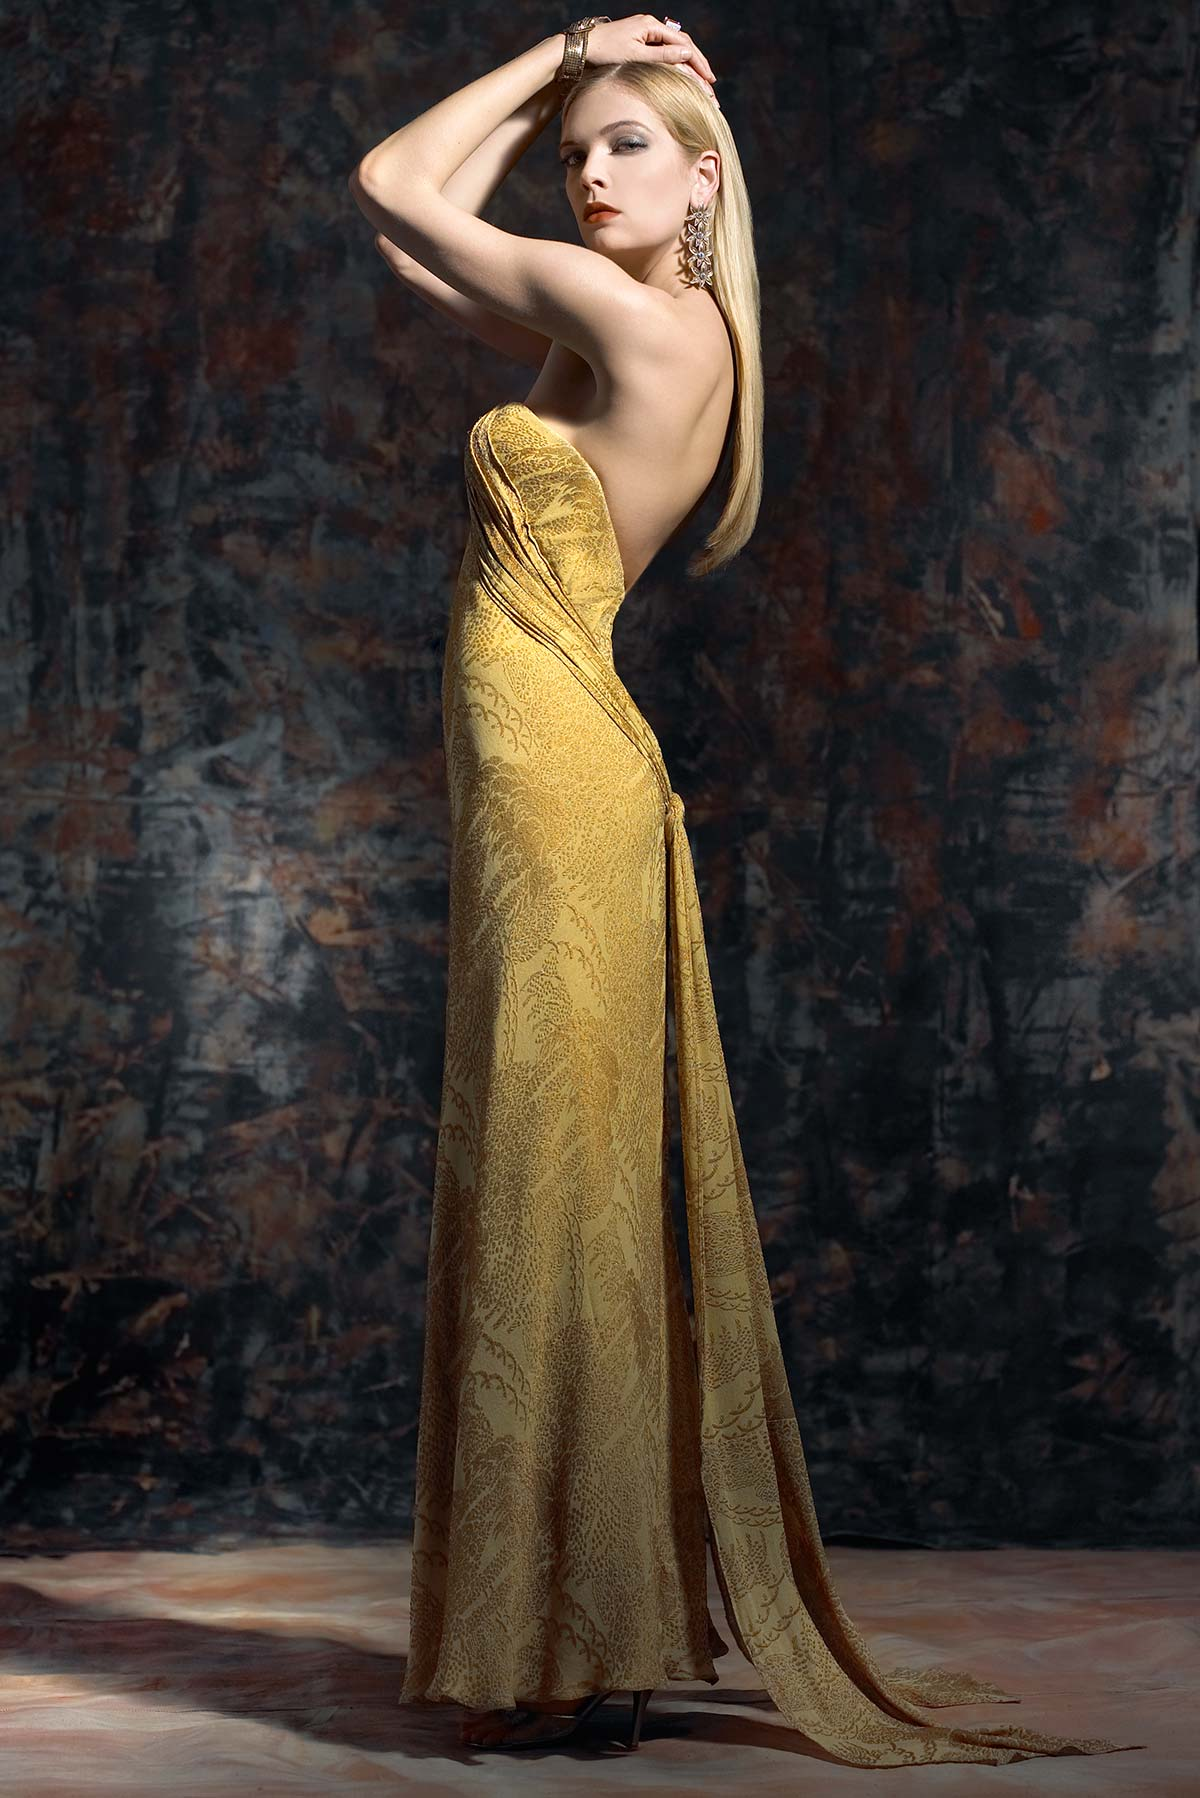 Gold-Fortuny_Constance-McCardle Fashion Design | Photography: Rick Luettke